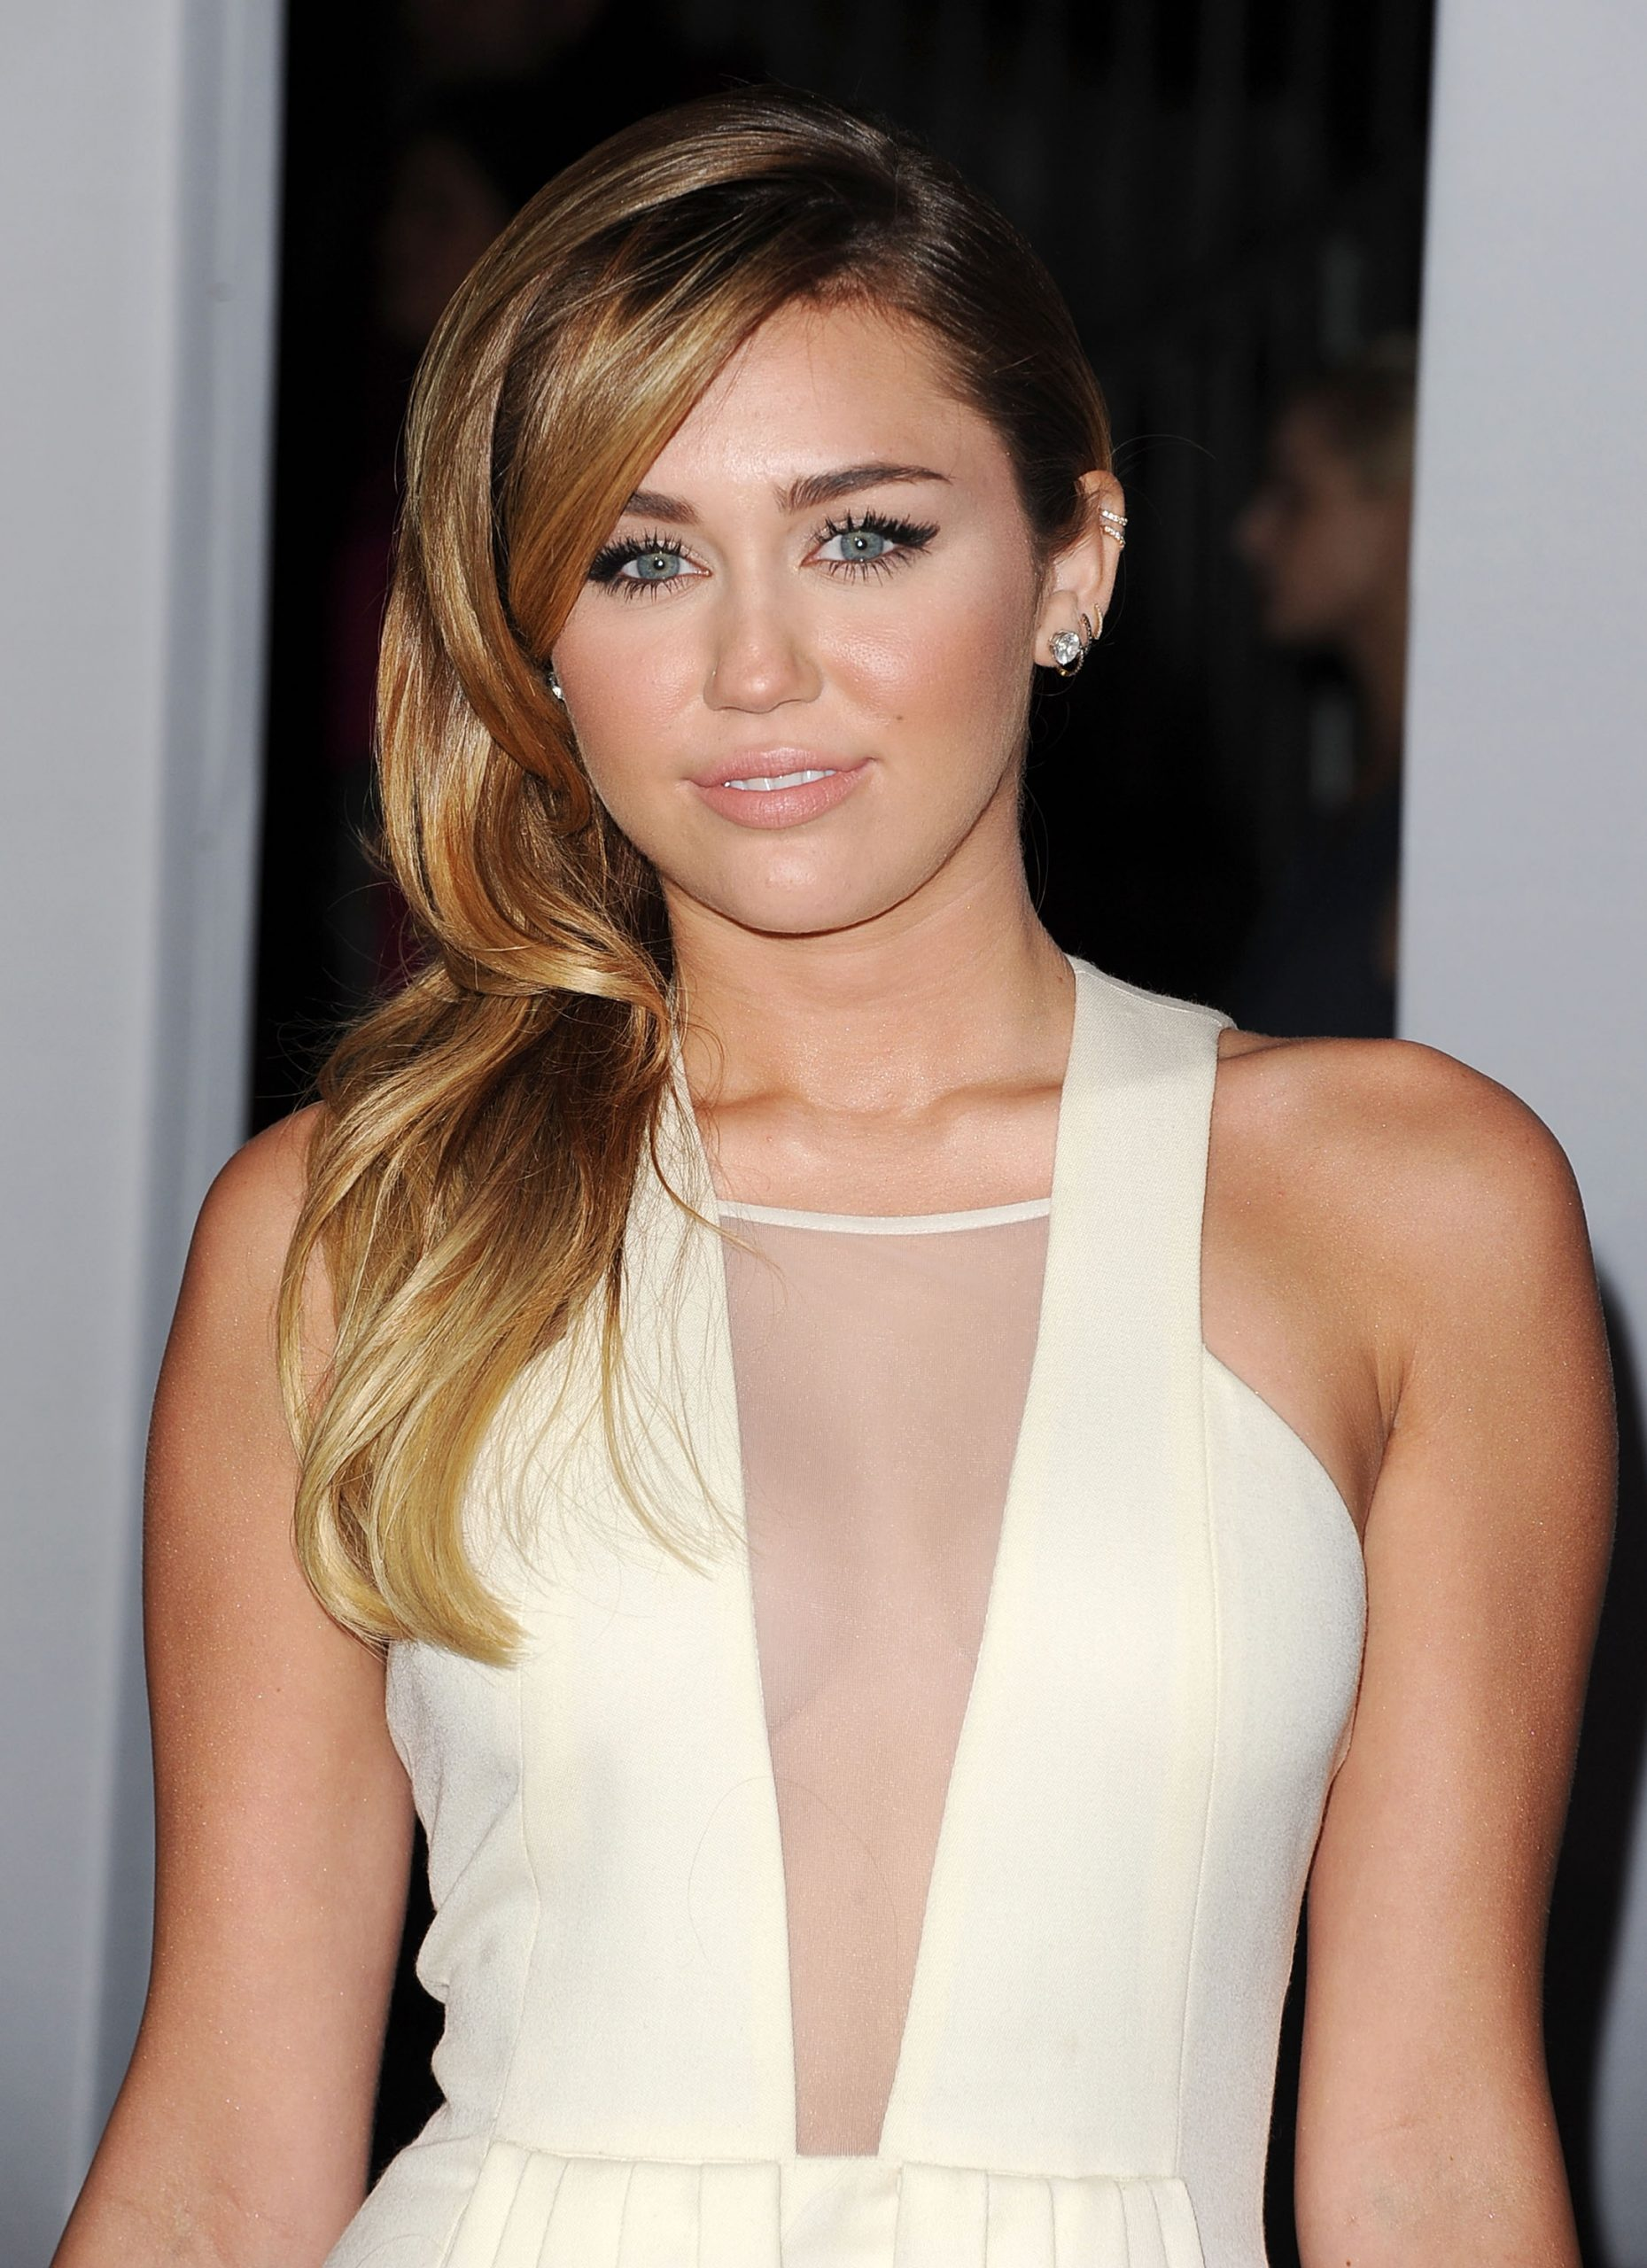 Before: Miley Cyrus